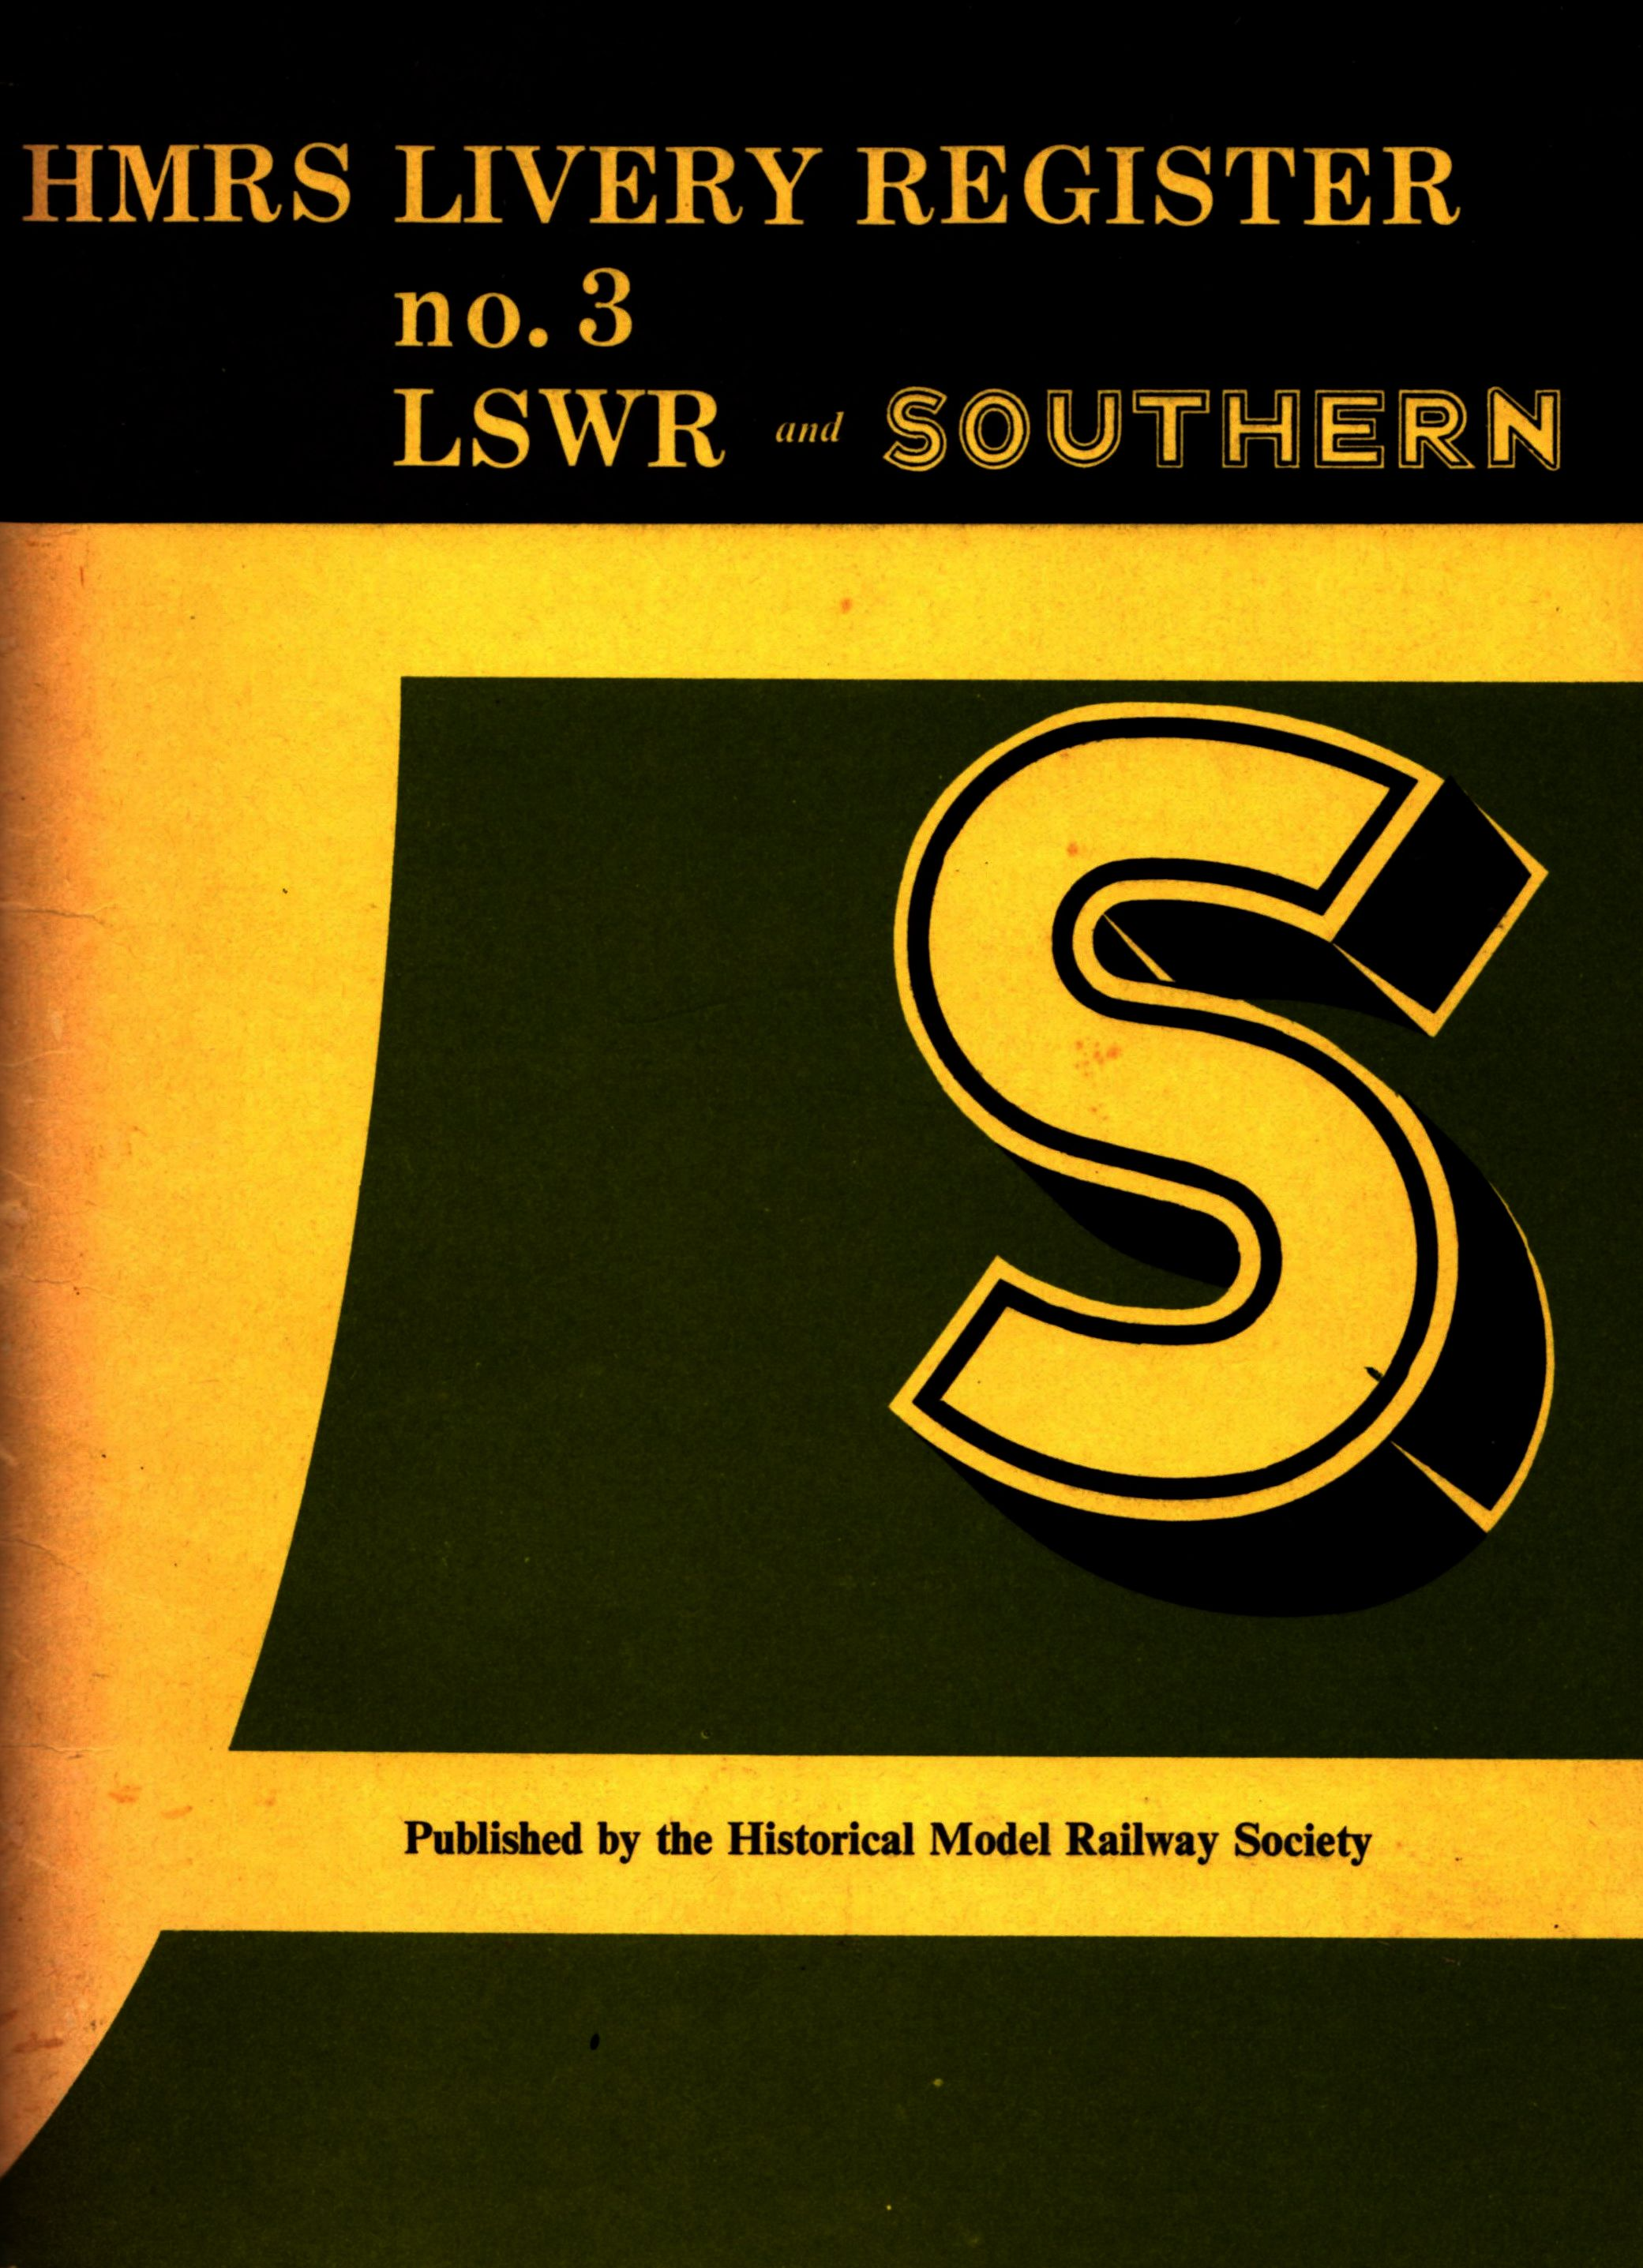 9780902835009 - HMRS Livery Register Number 3 LSWR And